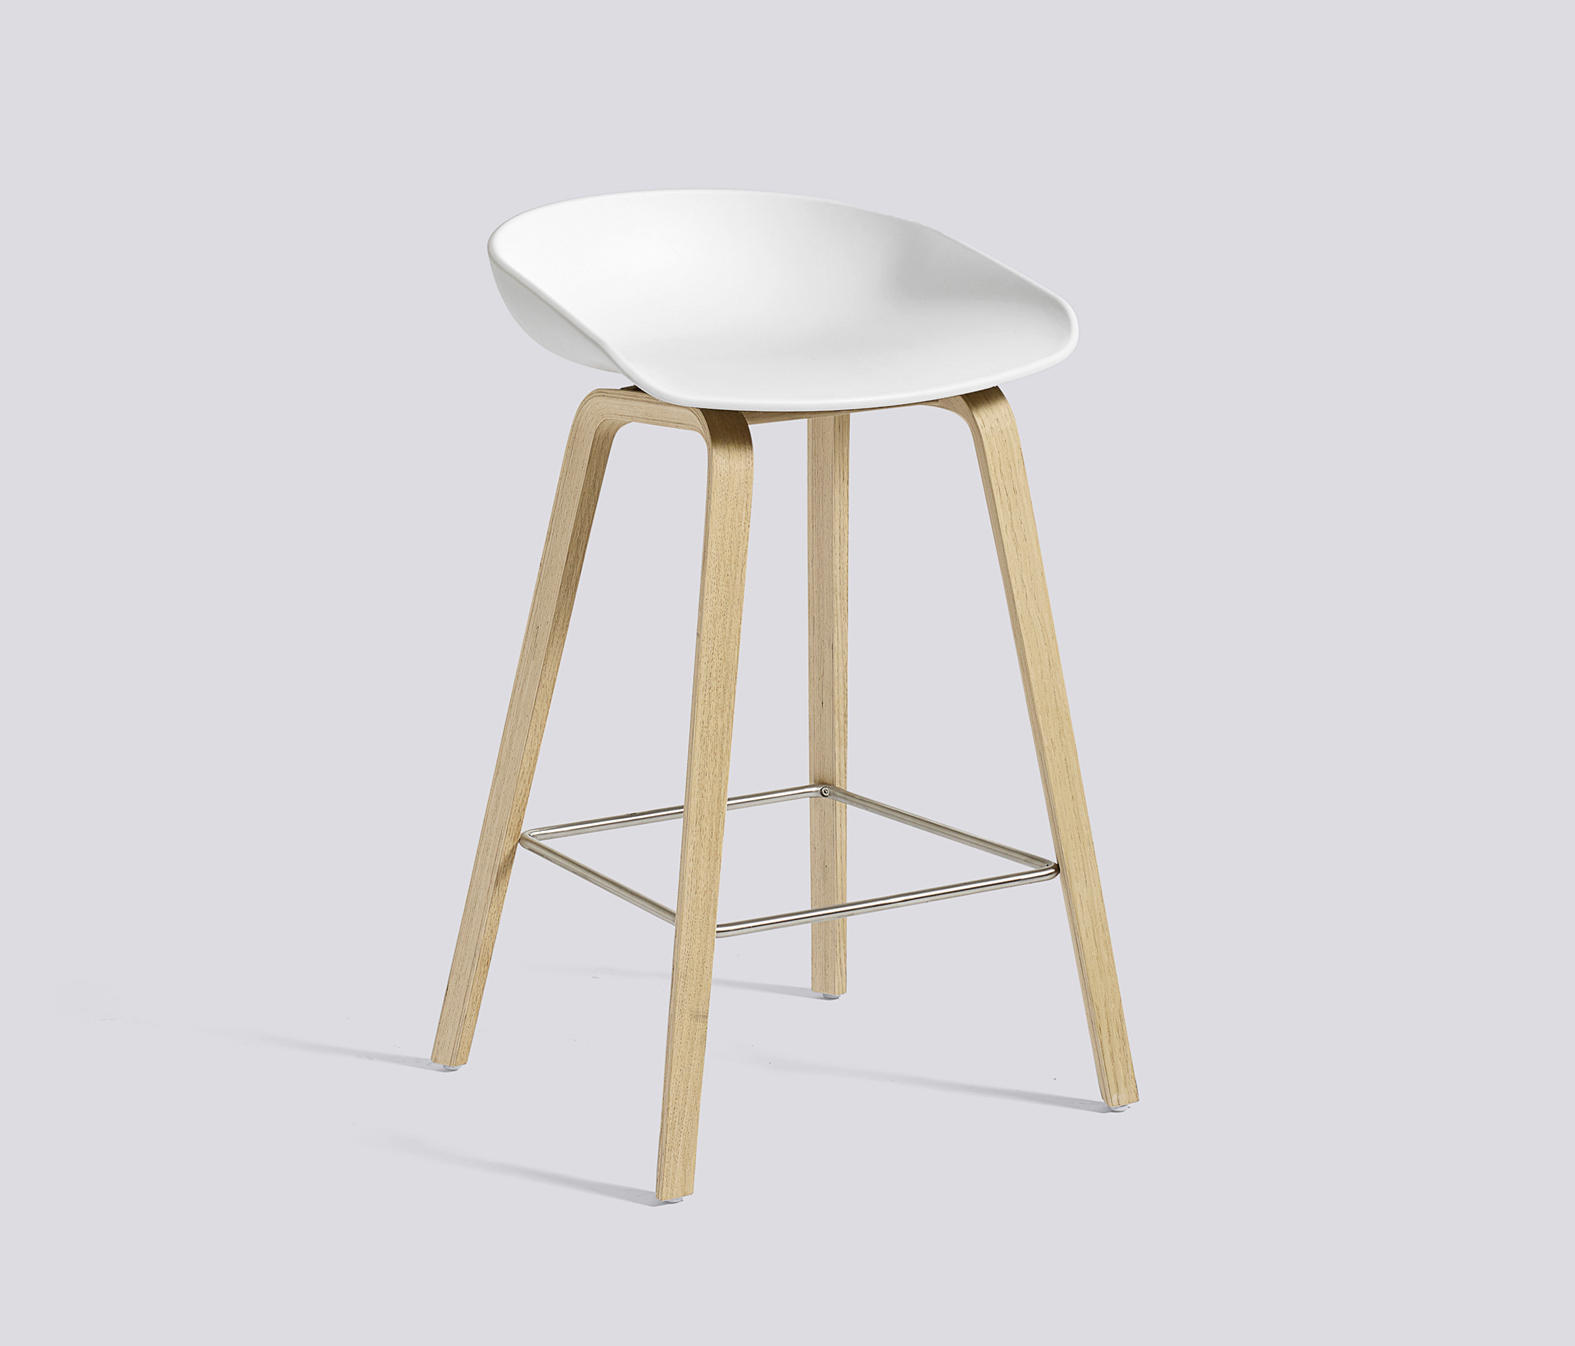 ABOUT A STOOL AAS32 Bar stools from Hay Architonic : aas32 h65 oak soaped stainless steel footrest white b from www.architonic.com size 1575 x 1346 jpeg 162kB